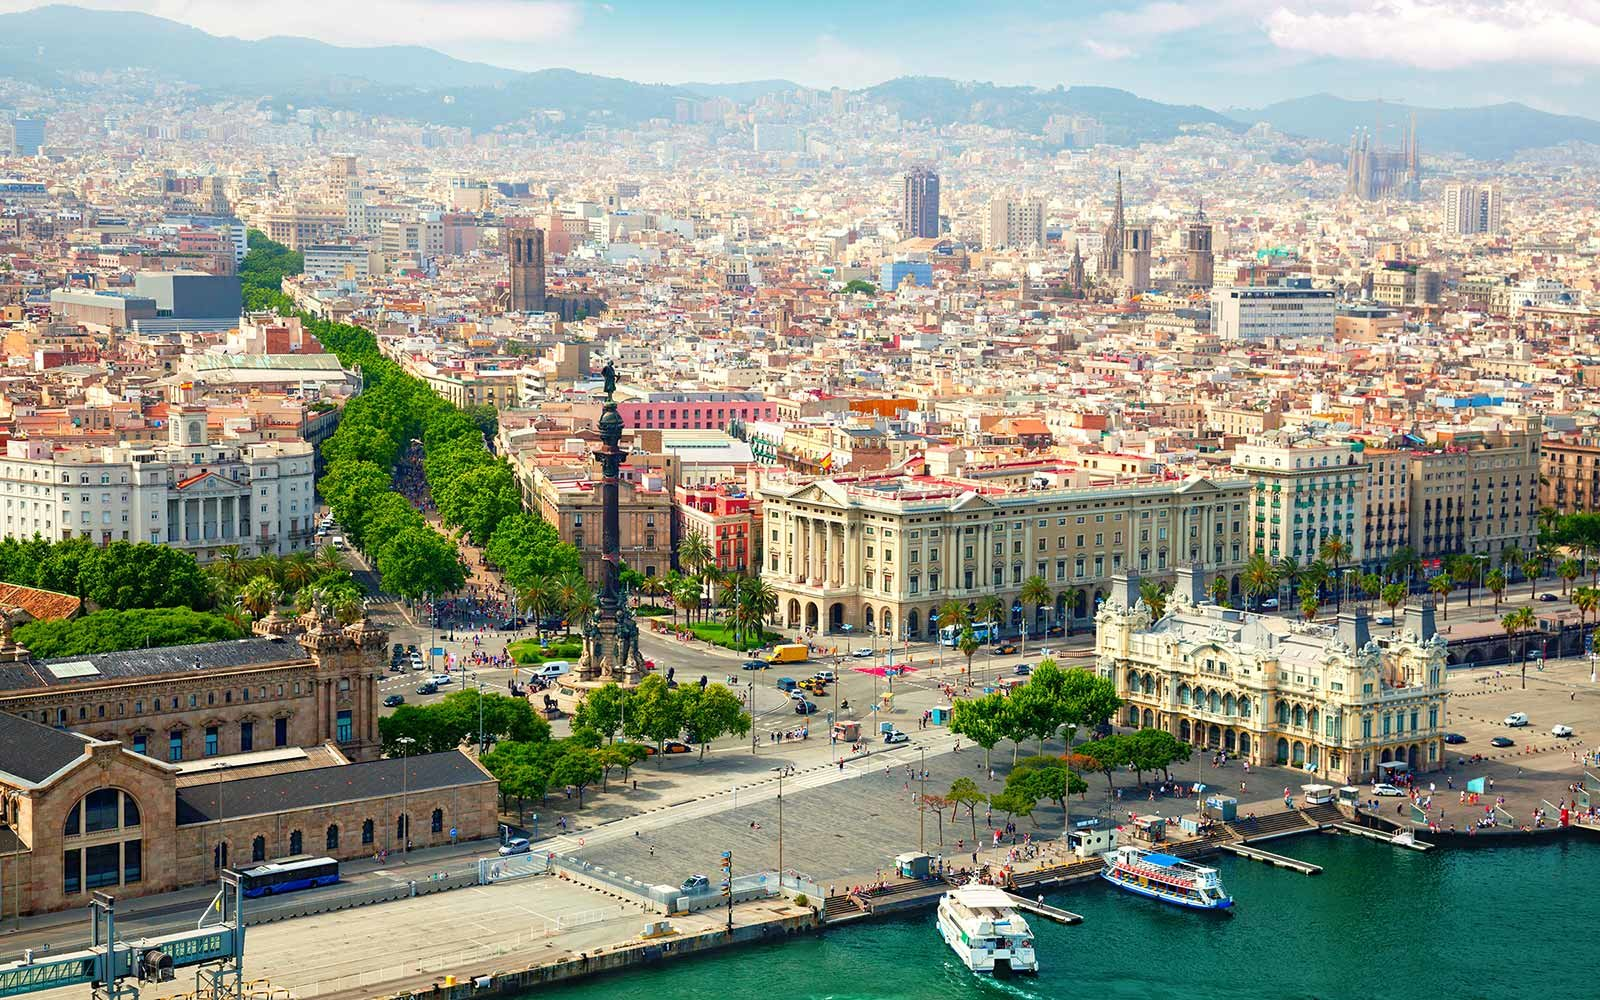 Barcelona Image: Fly To Barcelona This Winter For $303 Round-trip